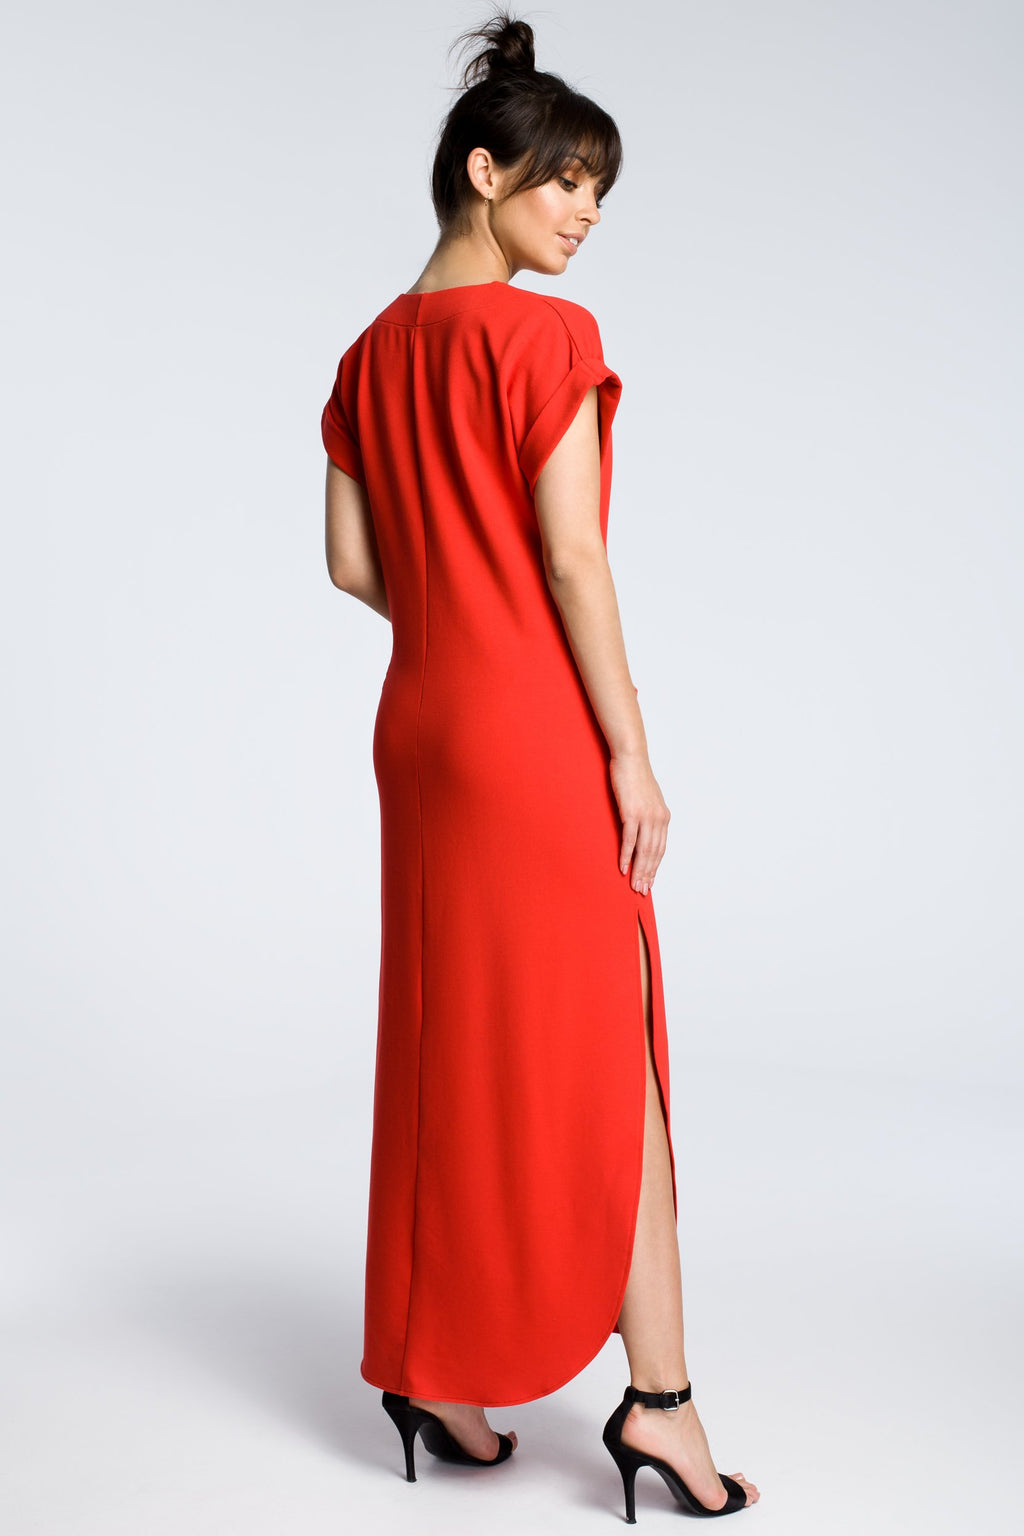 Red Maxi Dress With Side Slits